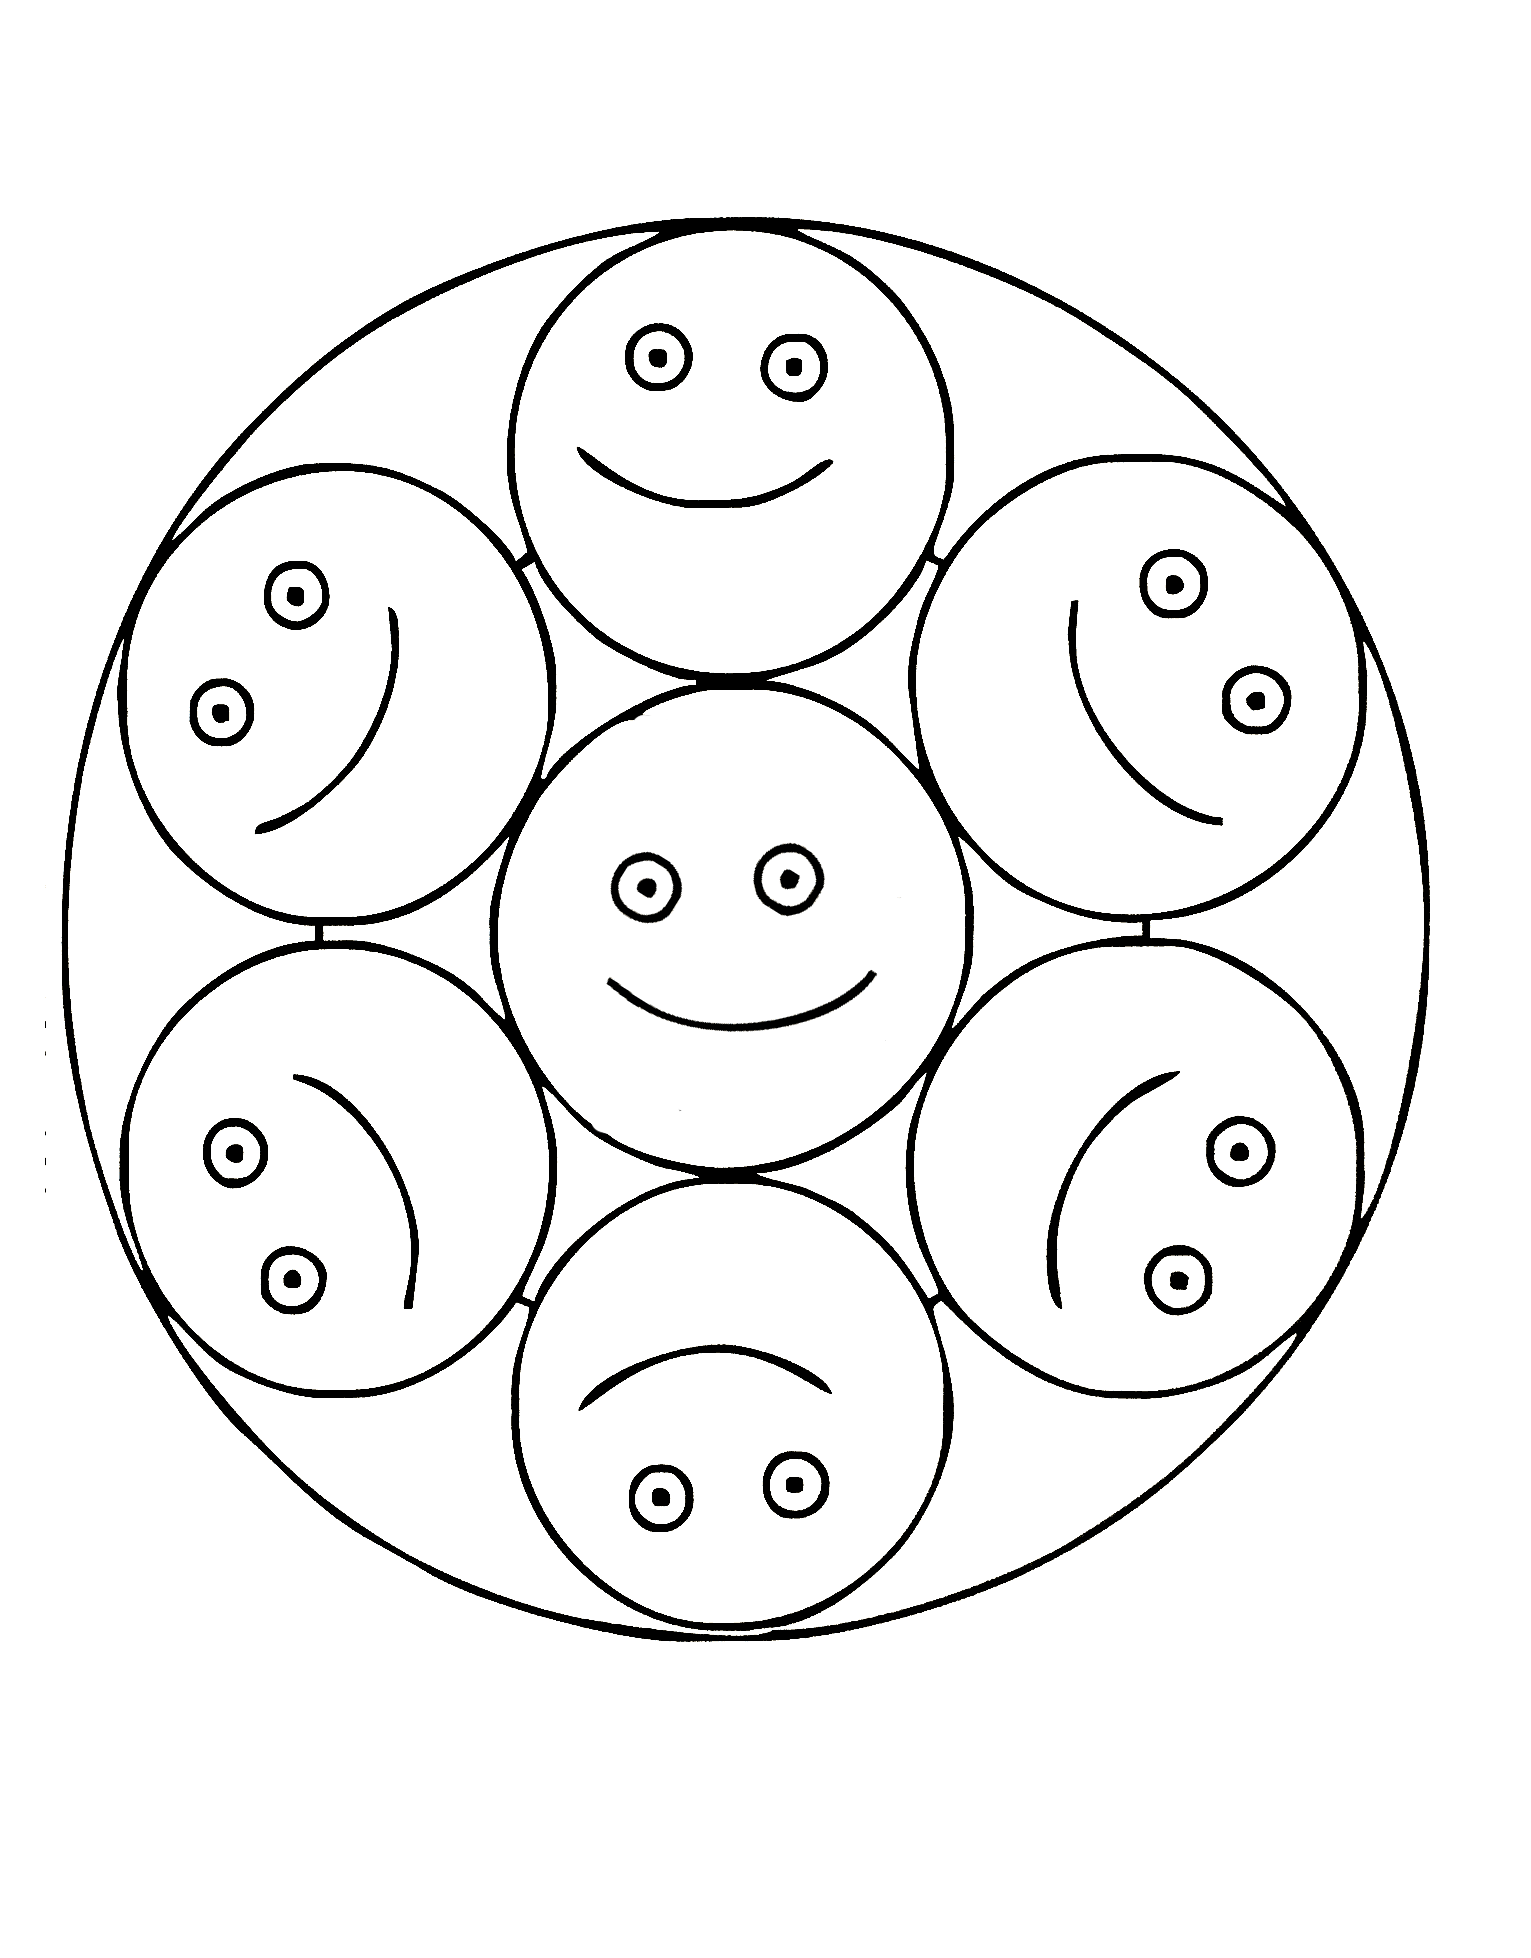 Mandala coloring pages for kindergarteners - Mandalas 01 Coloring Page For Kids And Adults From Cartoons Coloring Pages Mandalas Coloring Pages